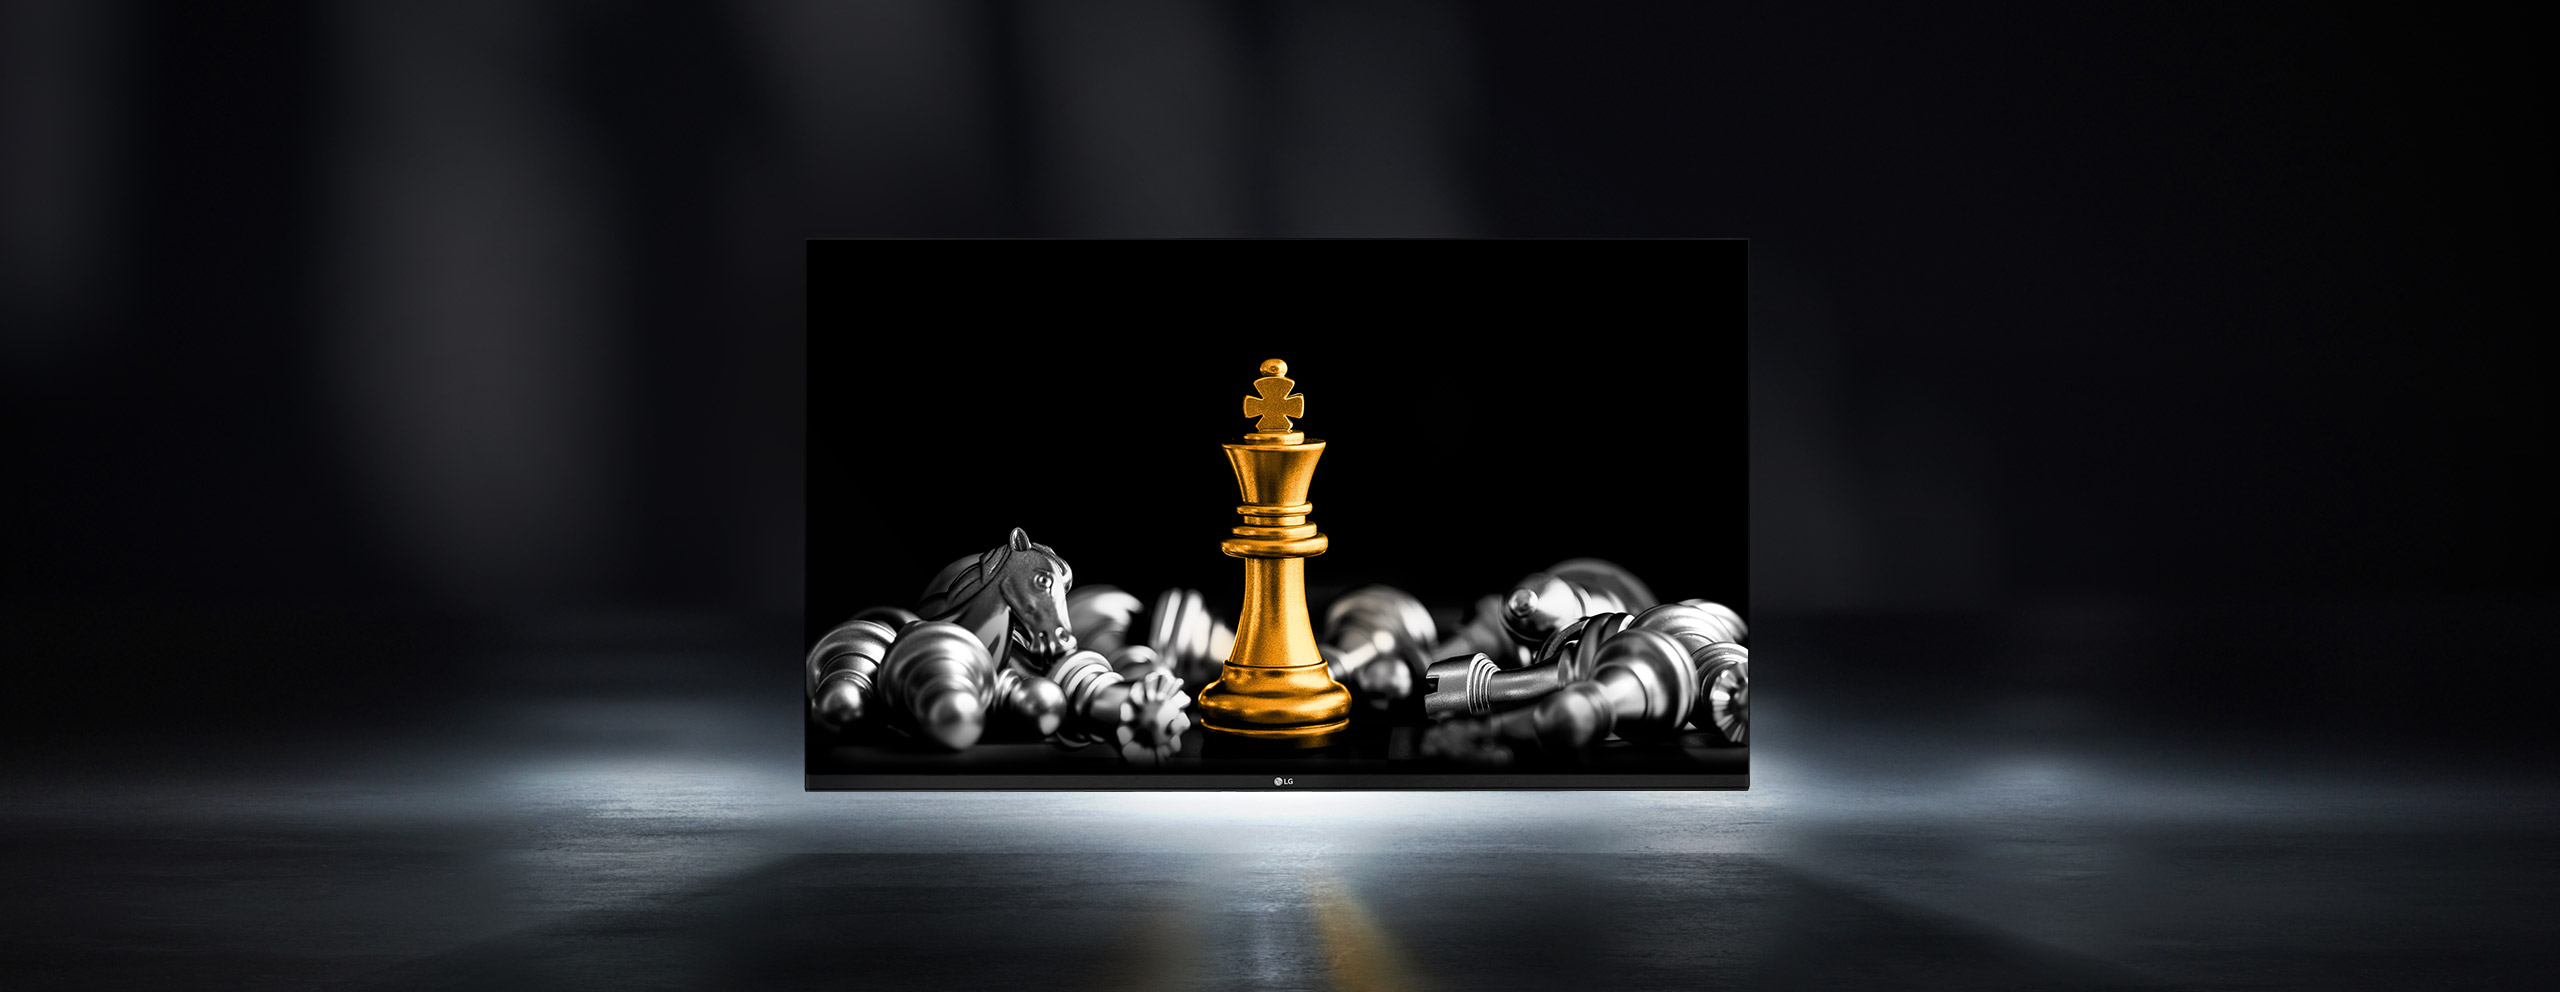 130 inch All-in-one LED screen showing chess pieces as its content.